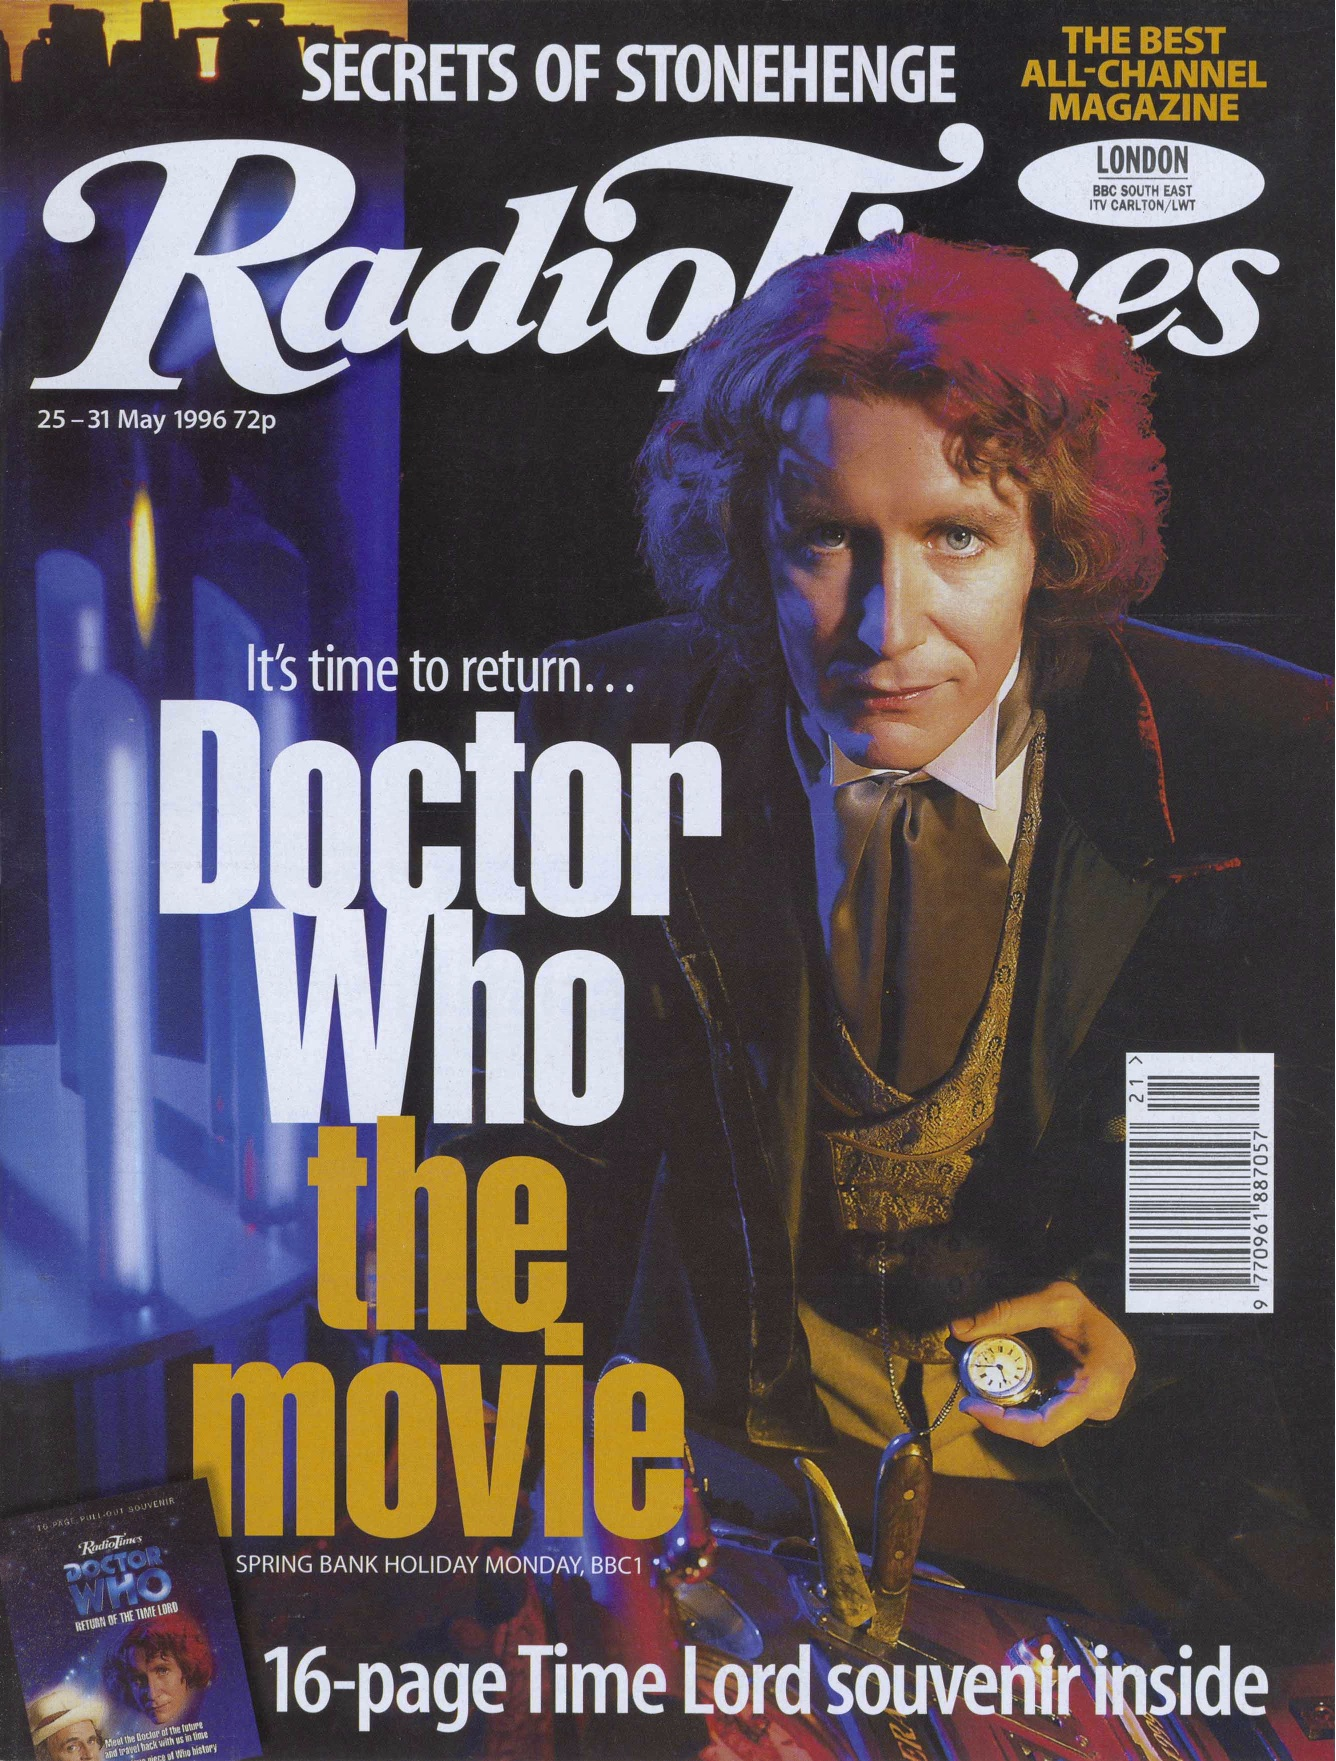 Radio Times (25-31 May 1996) (Credit: Radio Times)